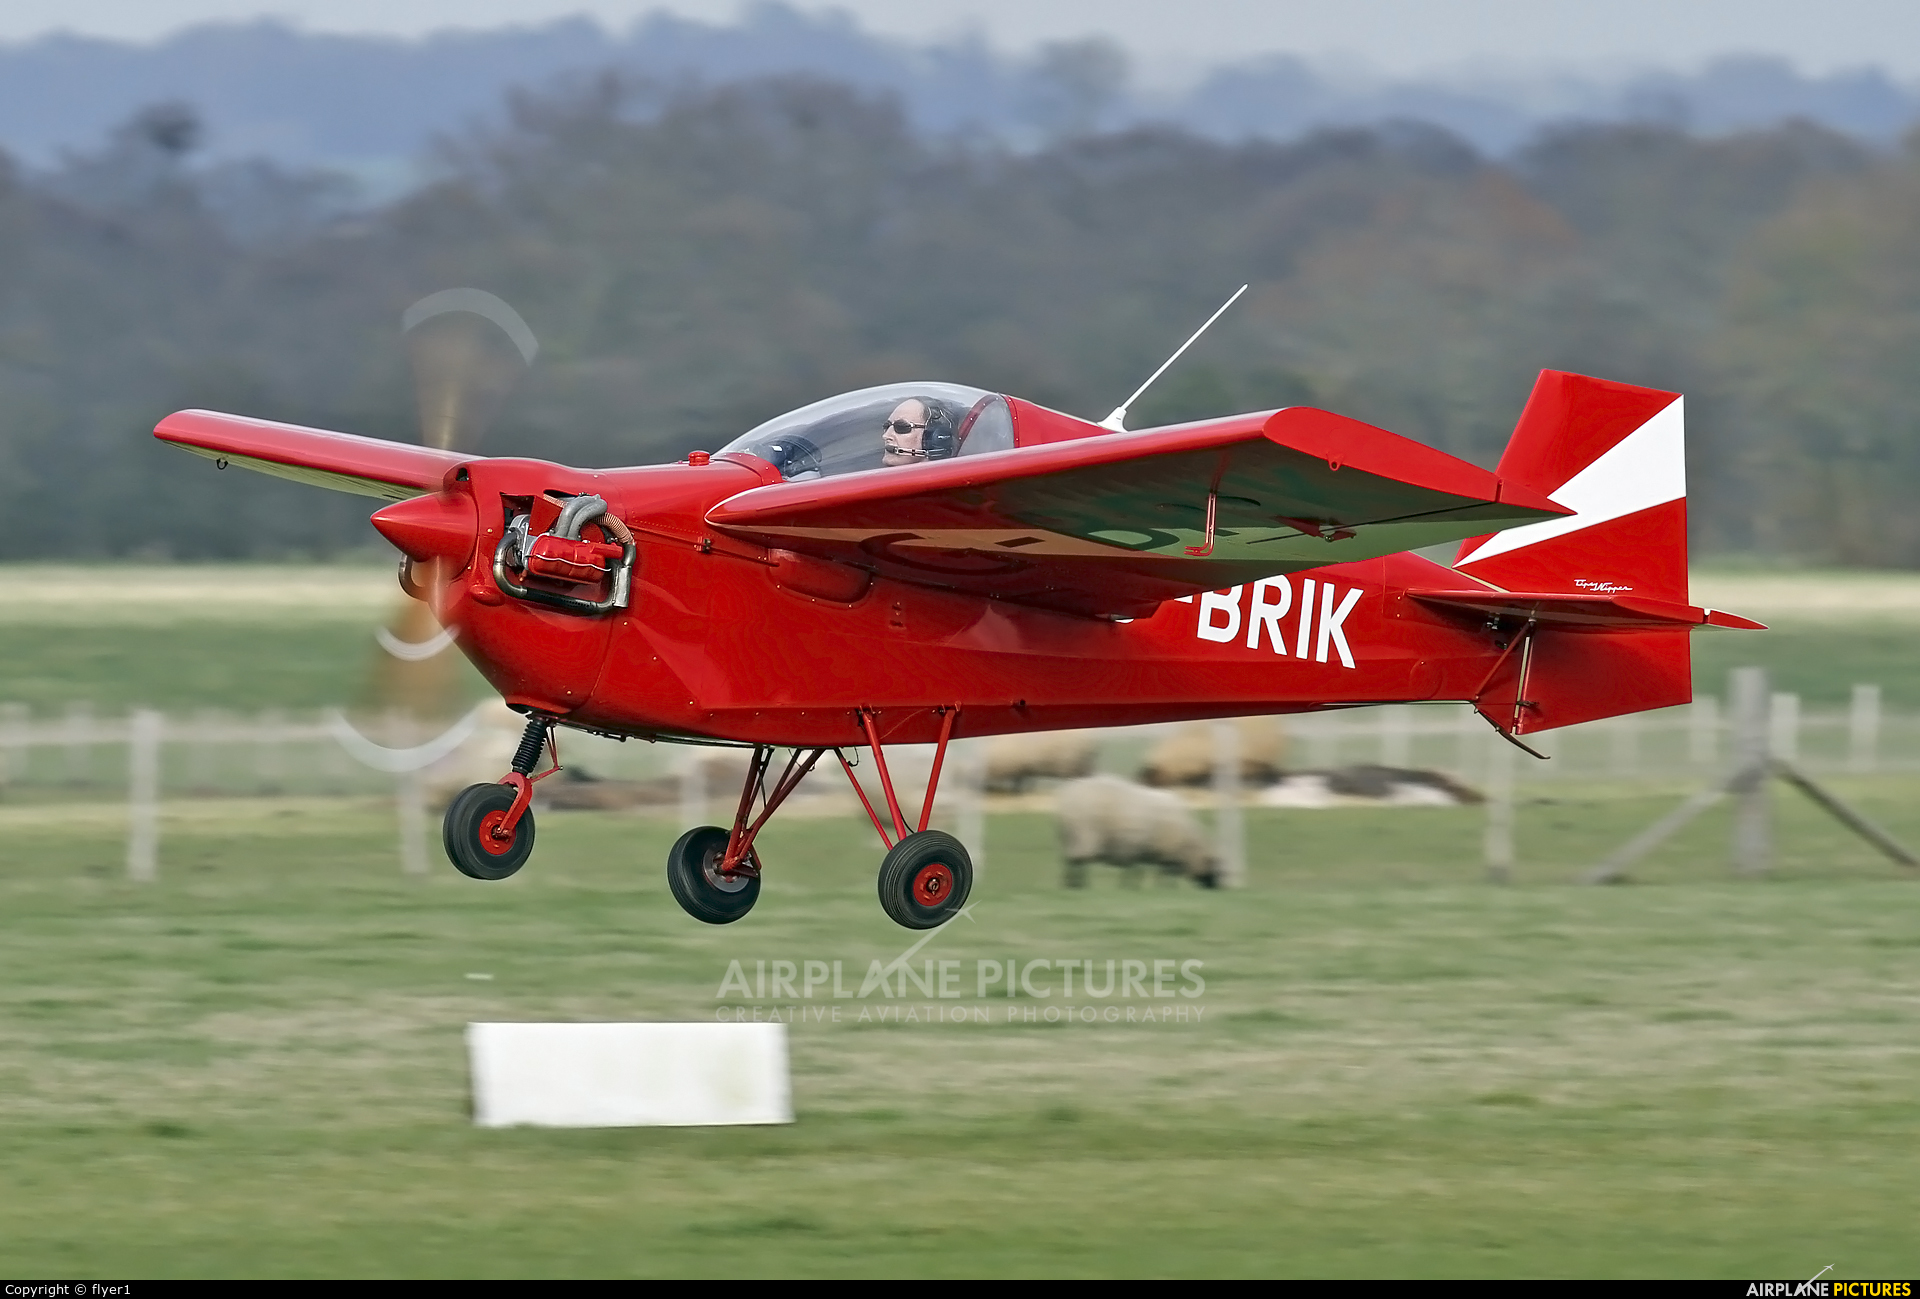 Private G-BRIK aircraft at Lashenden / Headcorn